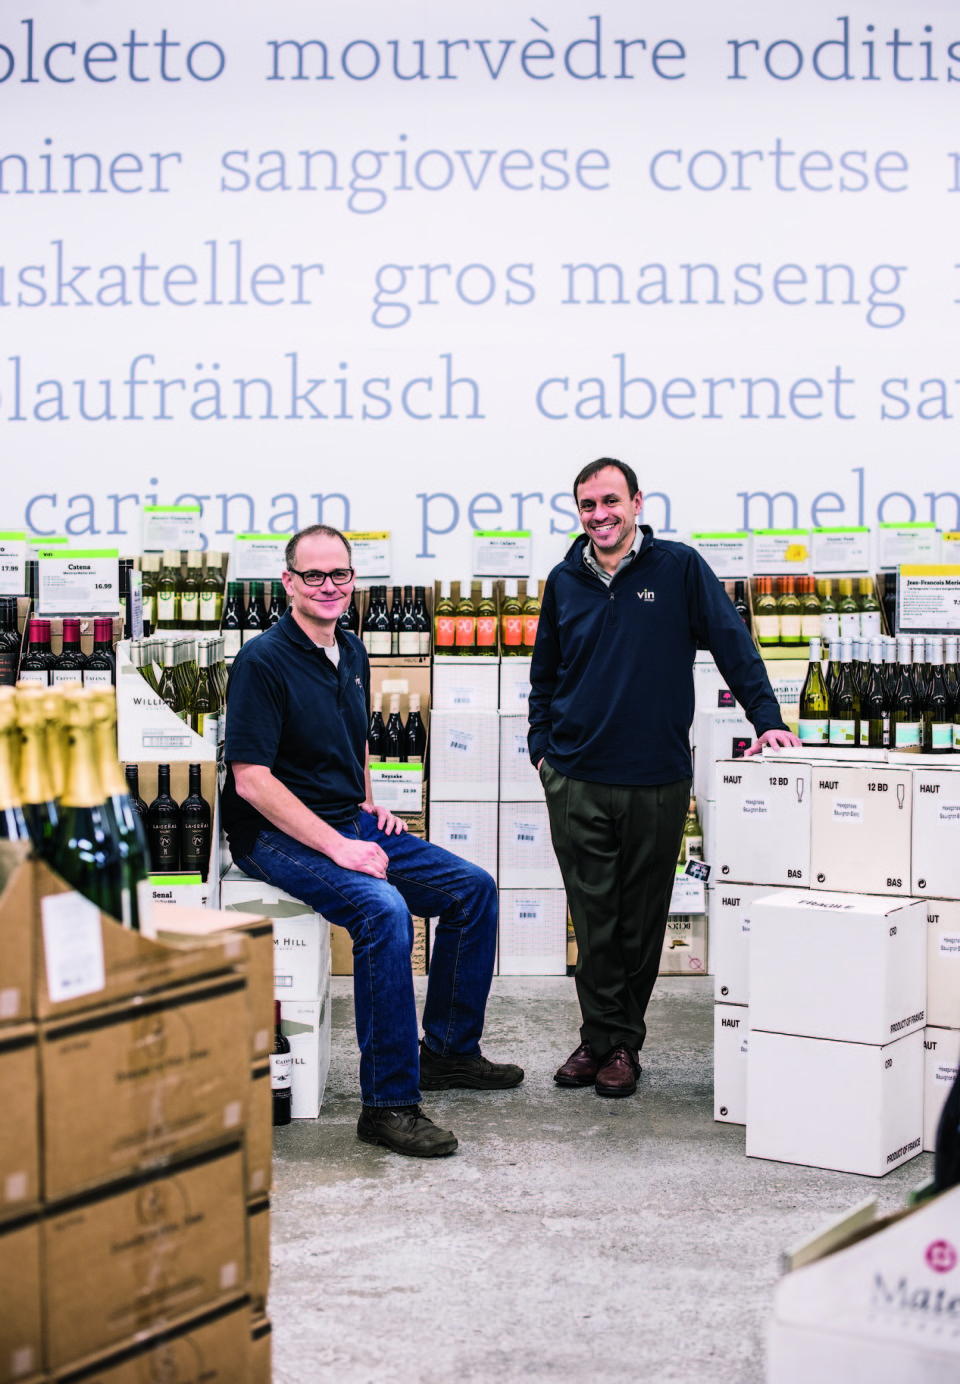 Peter Schwarzbach (right) took over his father's retail business, formerly called Wine Discount Center, in 2007, and rechristened it Vin Chicago. He relies on a team of trusted employees, including Chicago store manager Mike Baker (left).